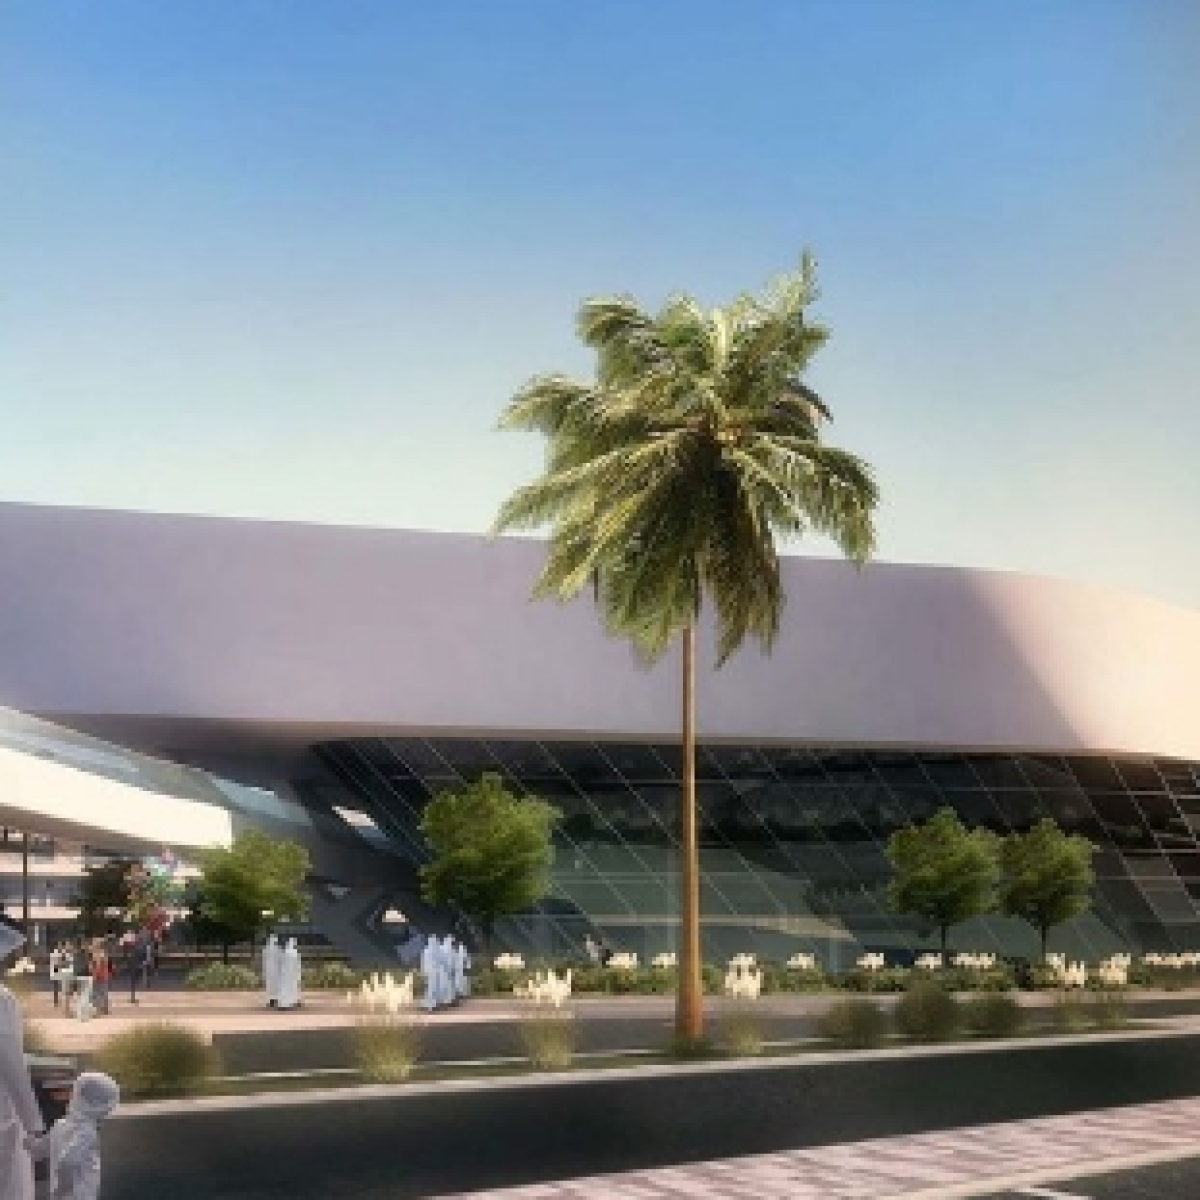 Middle East's largest aquarium to open in Abu Dhabi in 2020